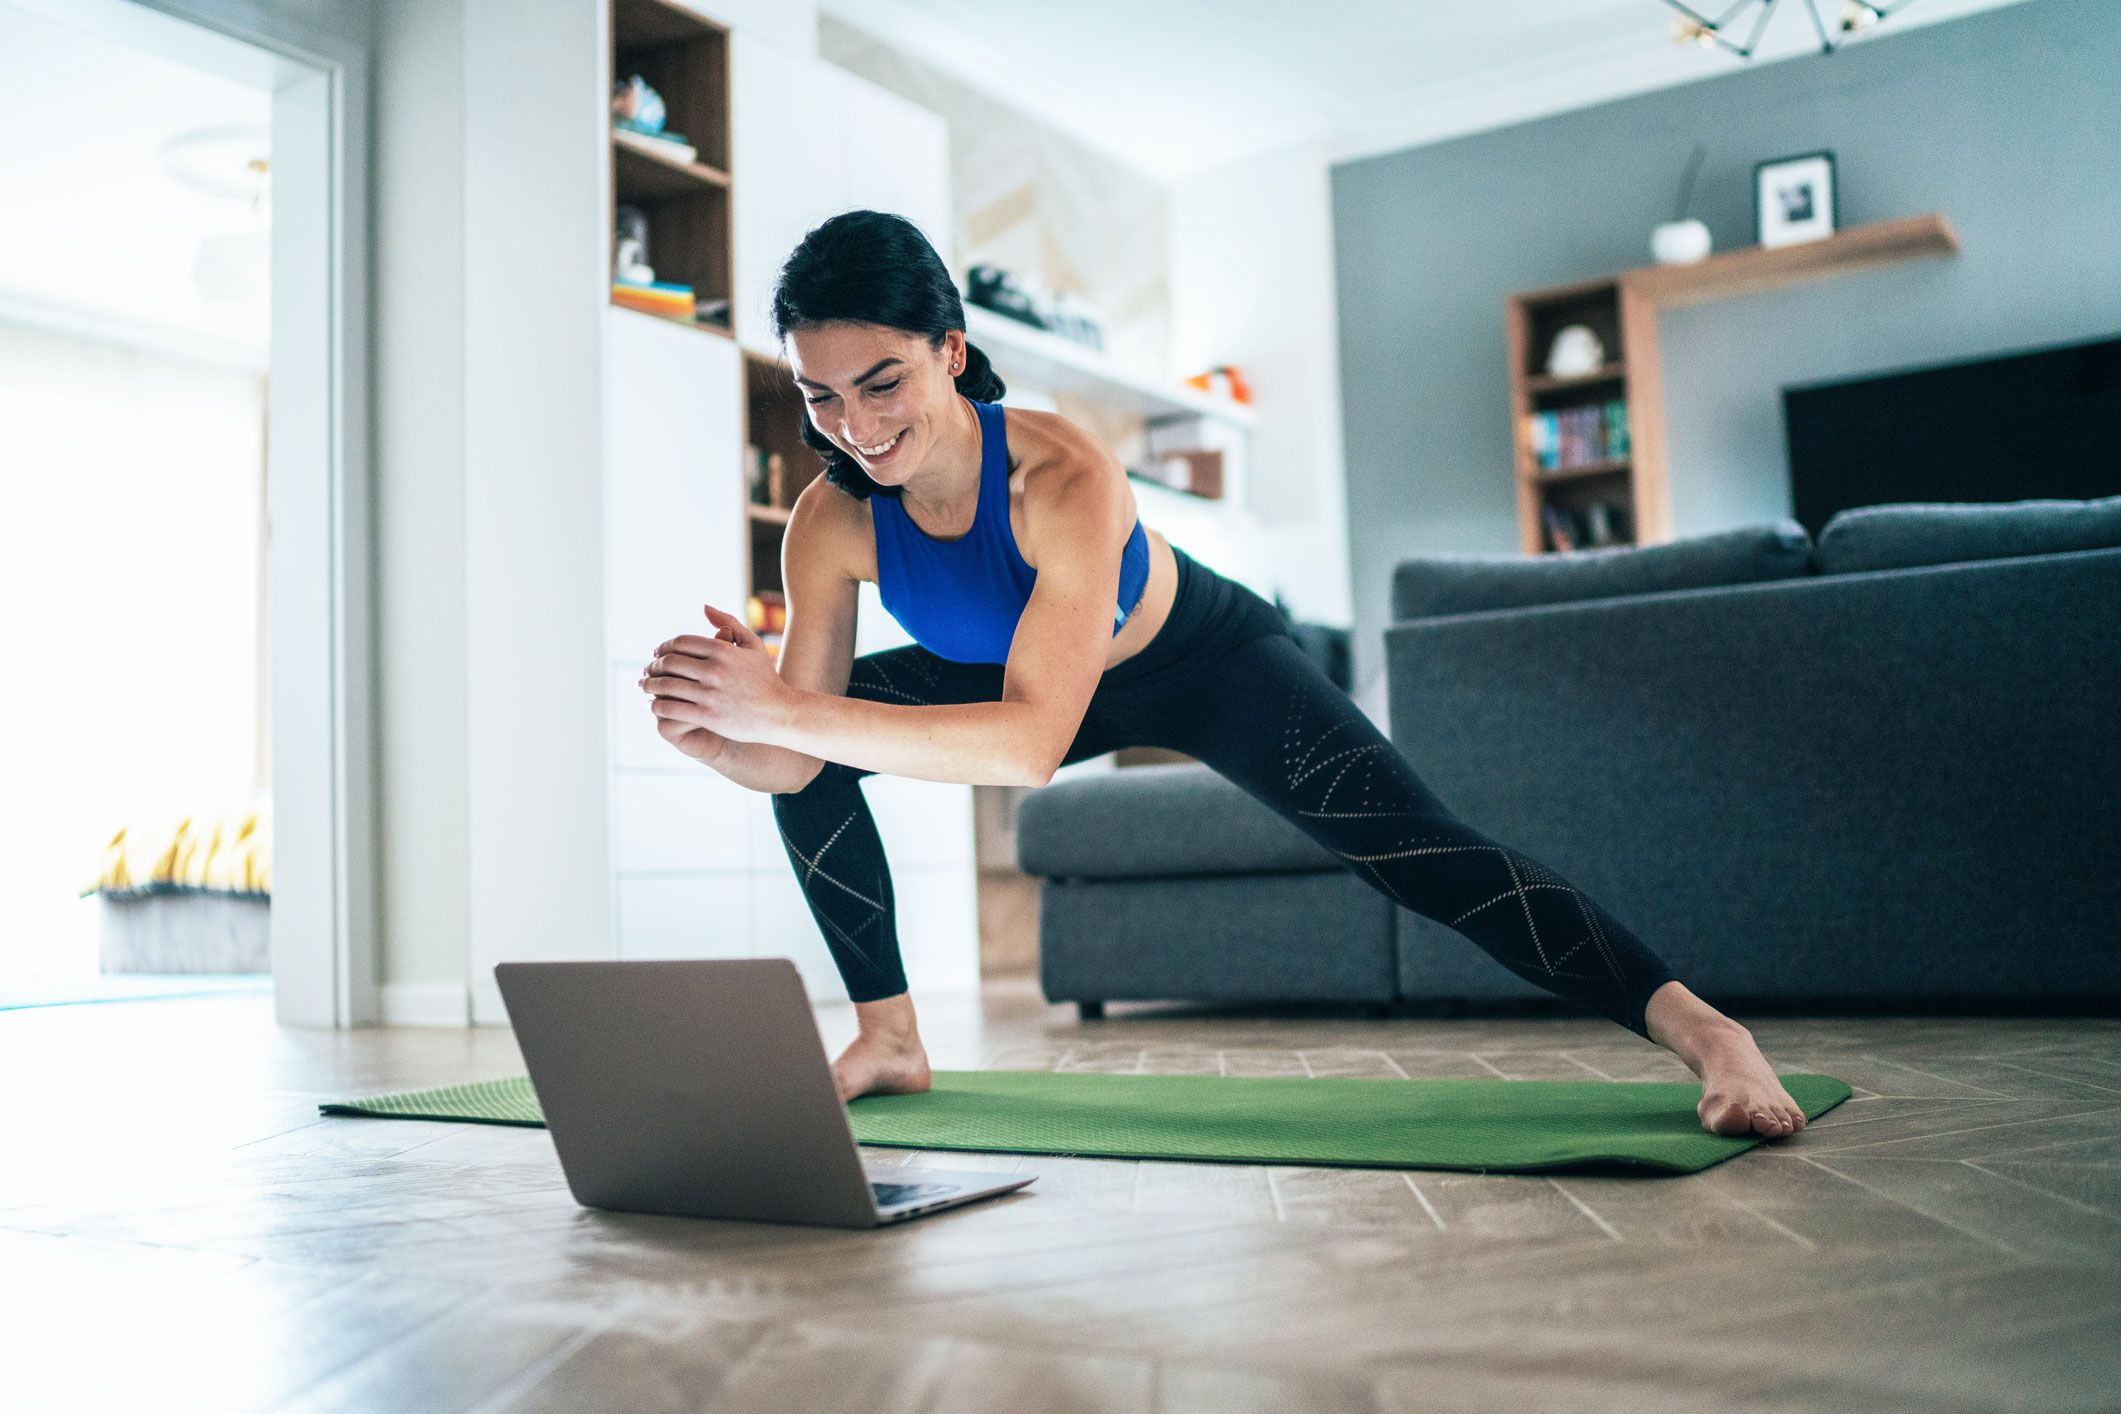 30 Pilates Videos To Stream For Free Top Pilates Youtube Channels